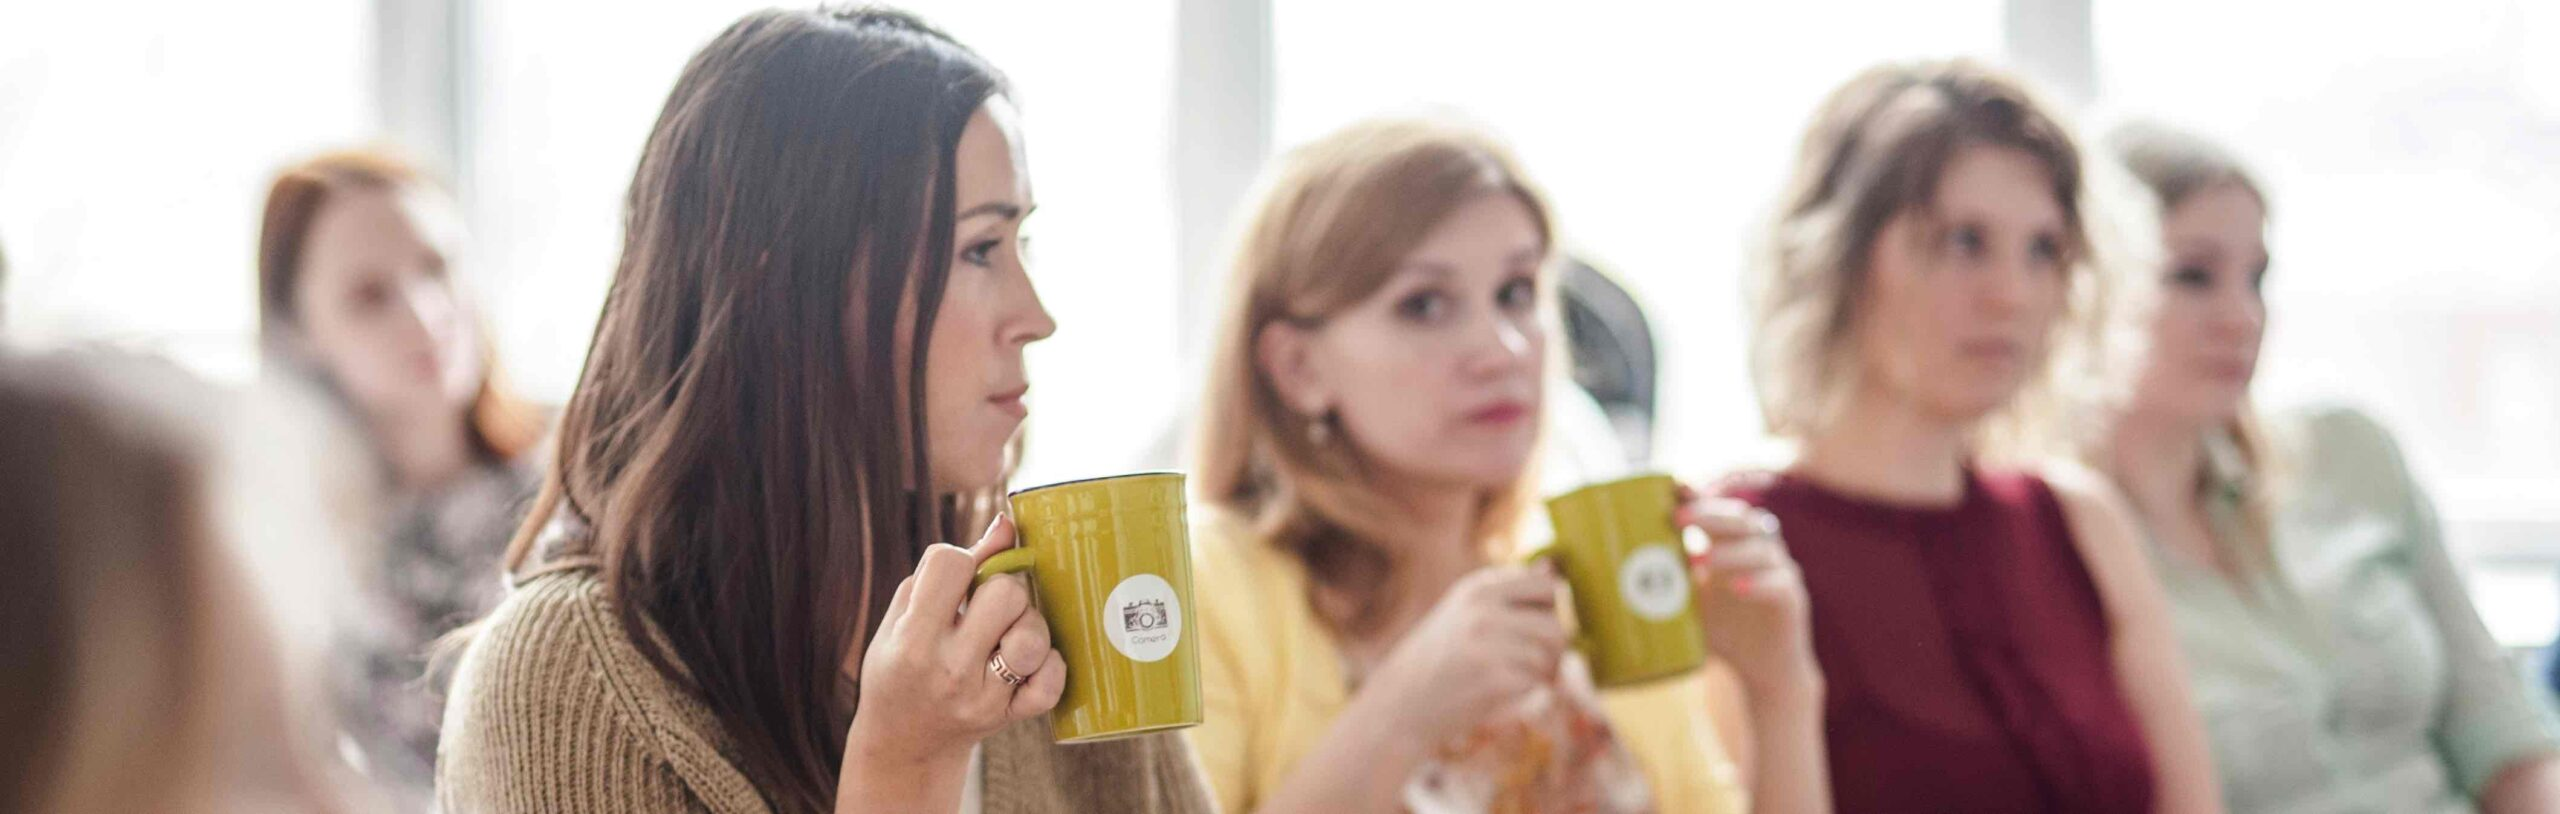 women drinking coffee in audience | health insurance premiums